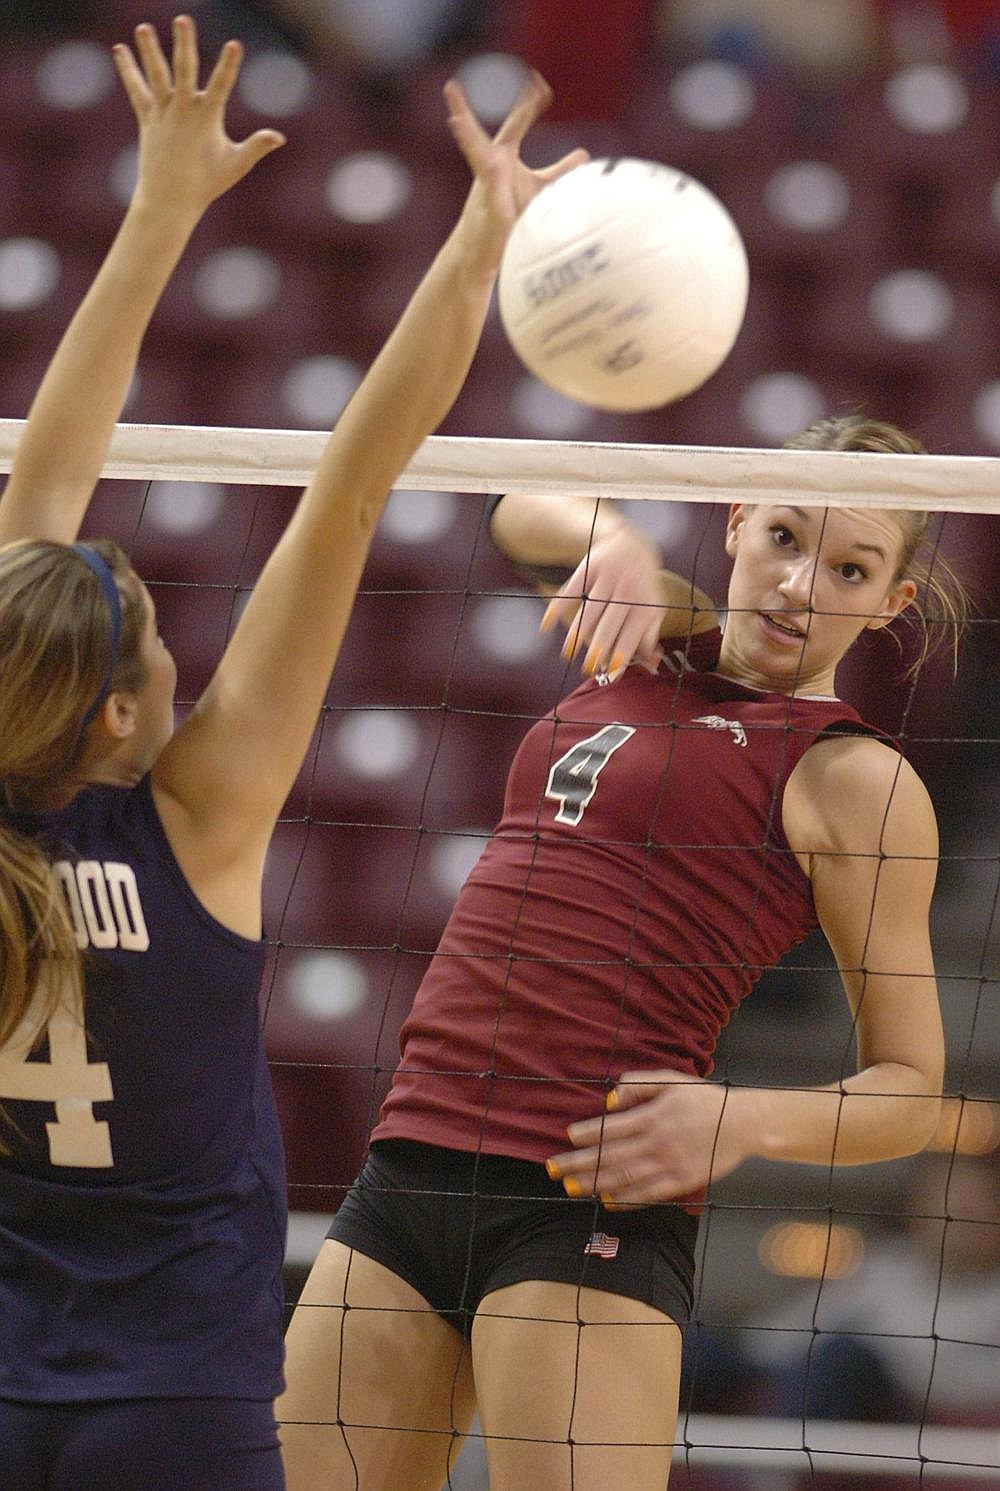 Hannah Allison Asafo-Adjei led Siloam Springs to four consecutive state volleyball titles, then helped Texas to three Final Four appearances and a national championship. (NWA Democrat-Gazette file photo)